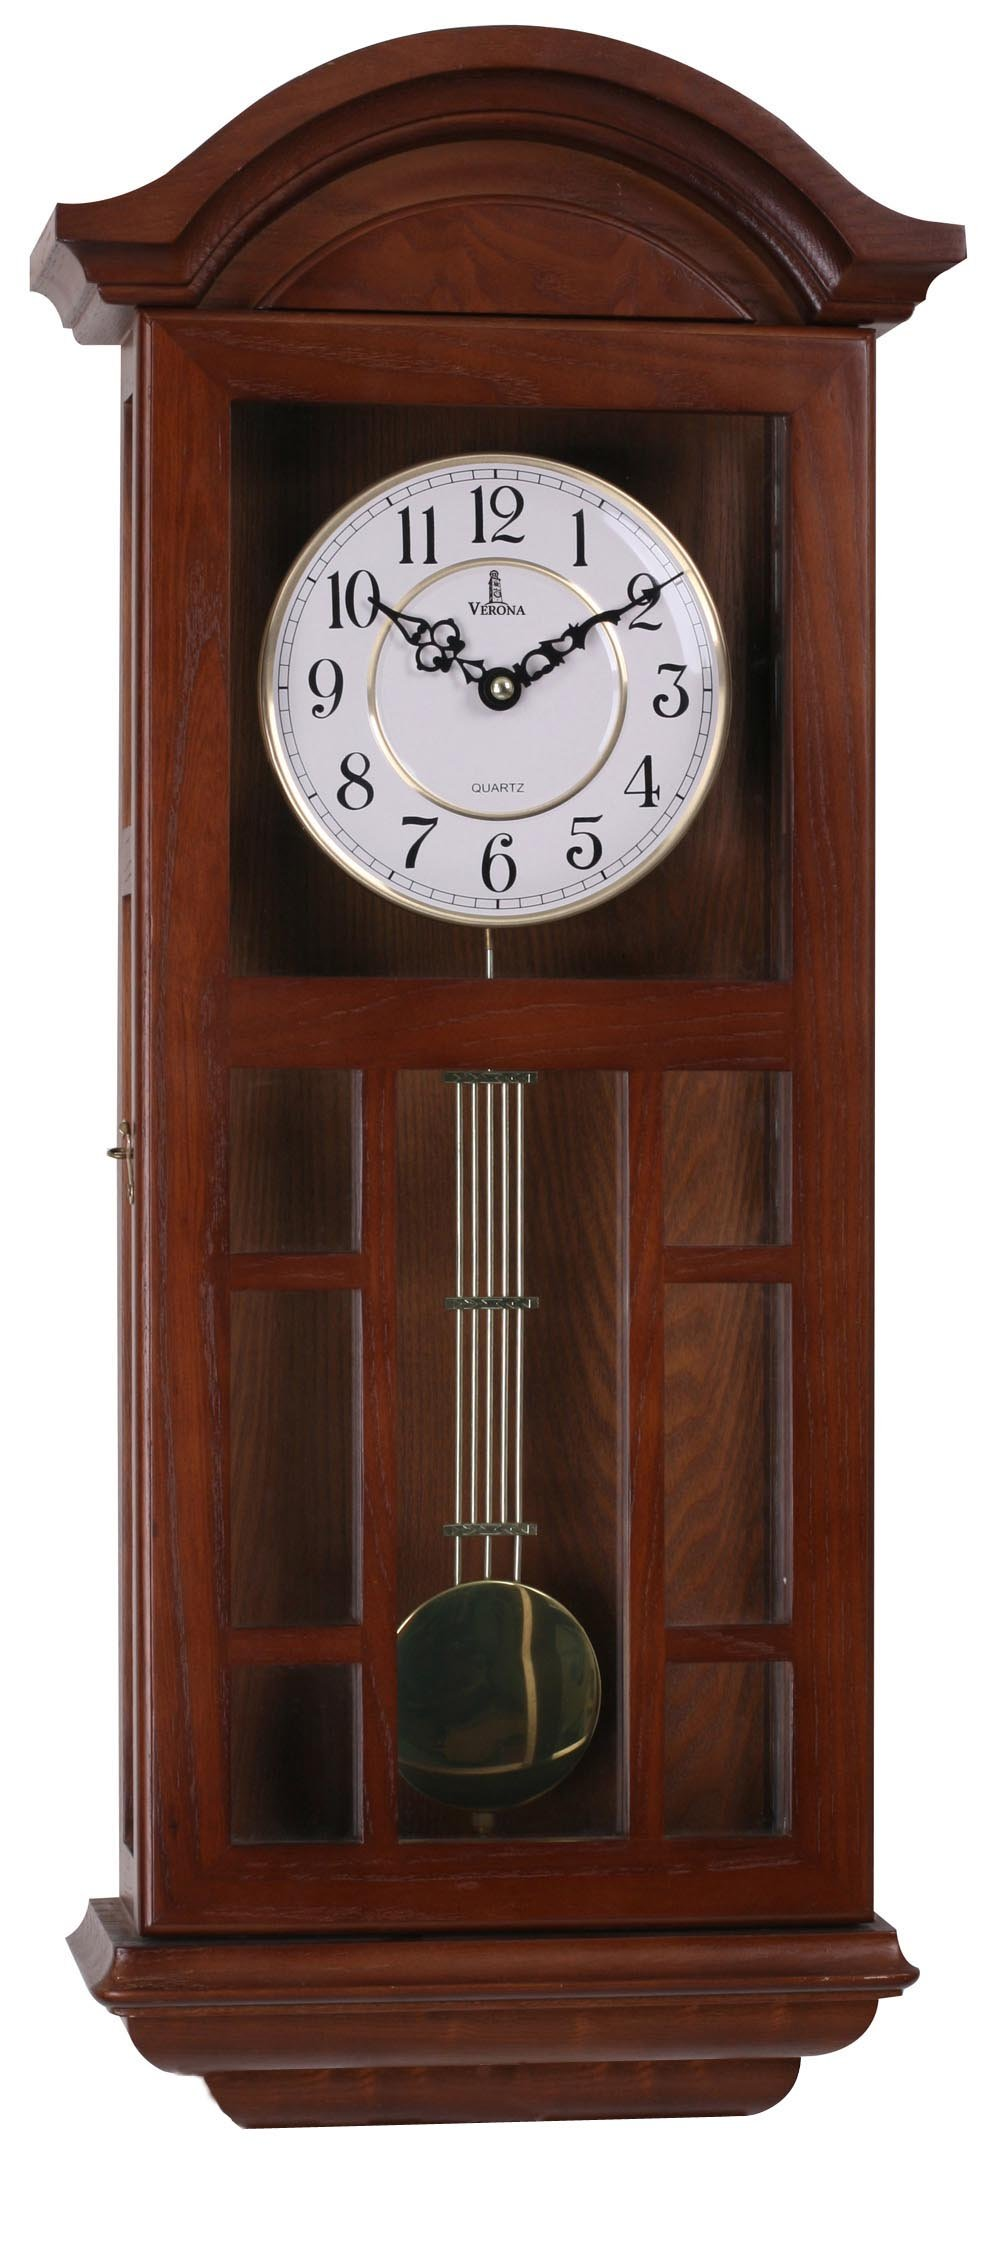 Verona Wood Pendulum Wall Clock with Cutout Design & Glass Front - Elegant & decorative clock with dark brown finish and glass front – 27 x 11.5 x 4.75 inch –Quartz movement, battery operated & silent by Verona Clocks